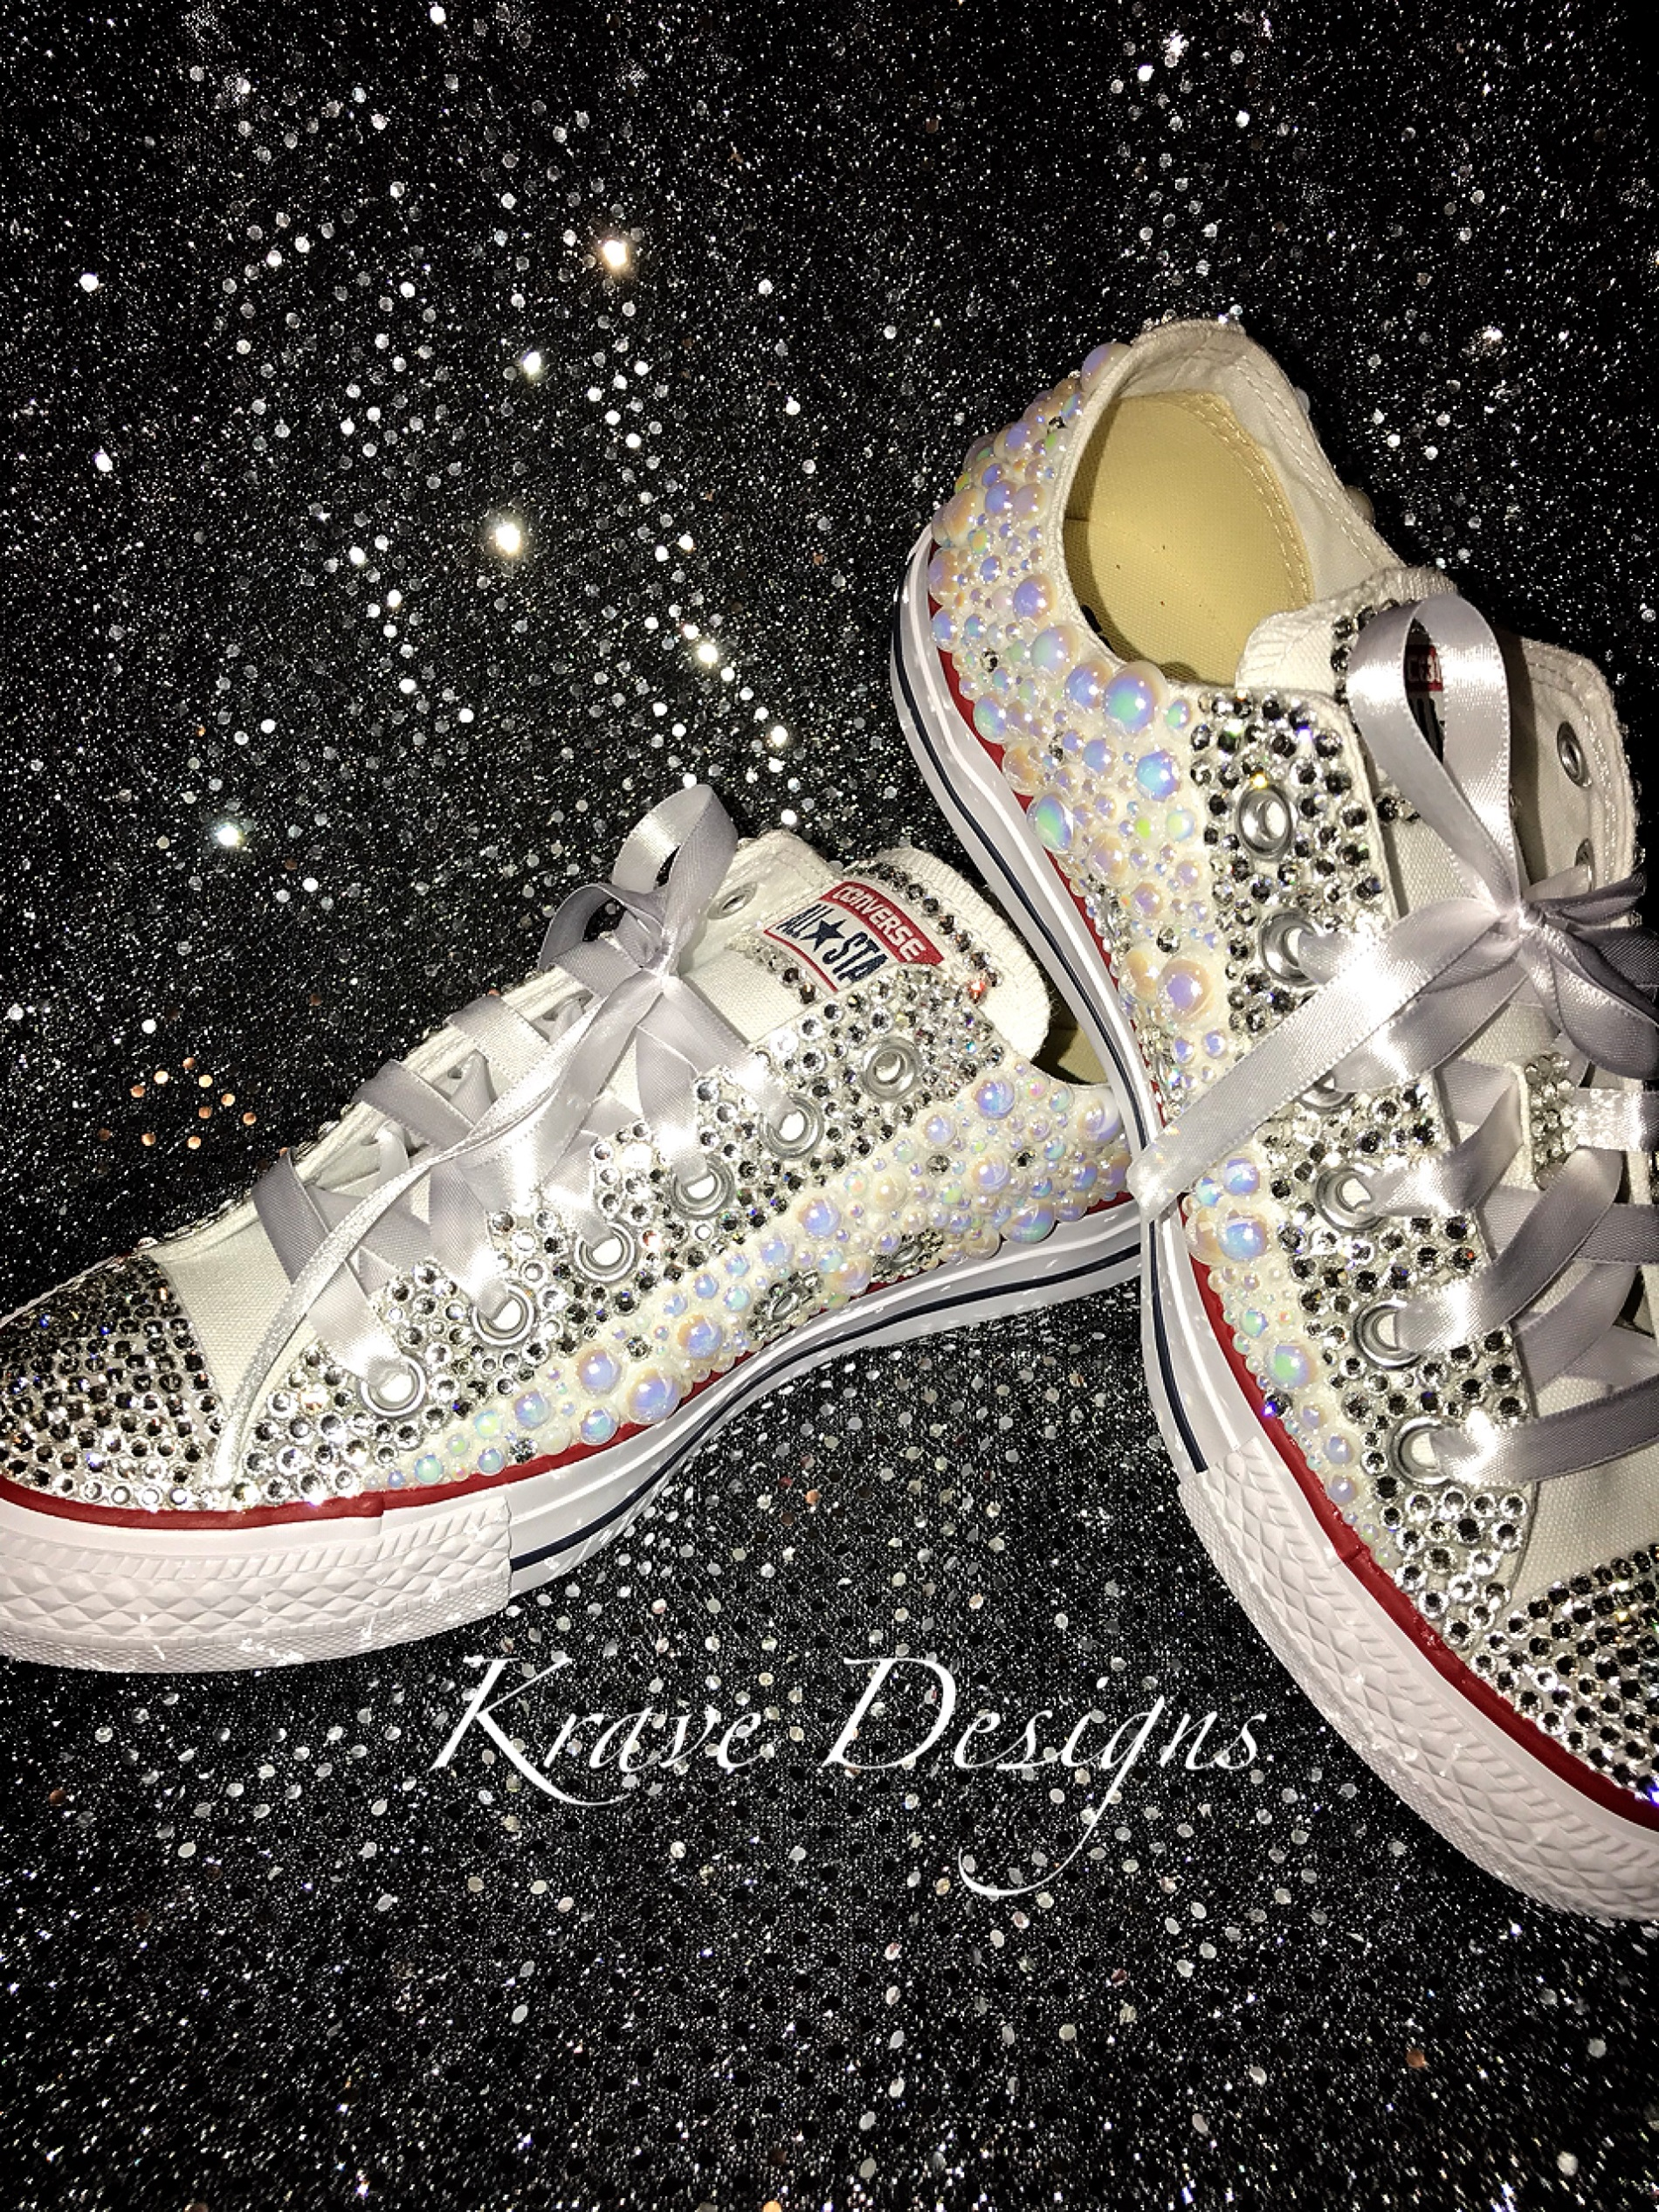 ea26ad8678c0 Adult Bling Chuck Taylor Lo-Top Shoes